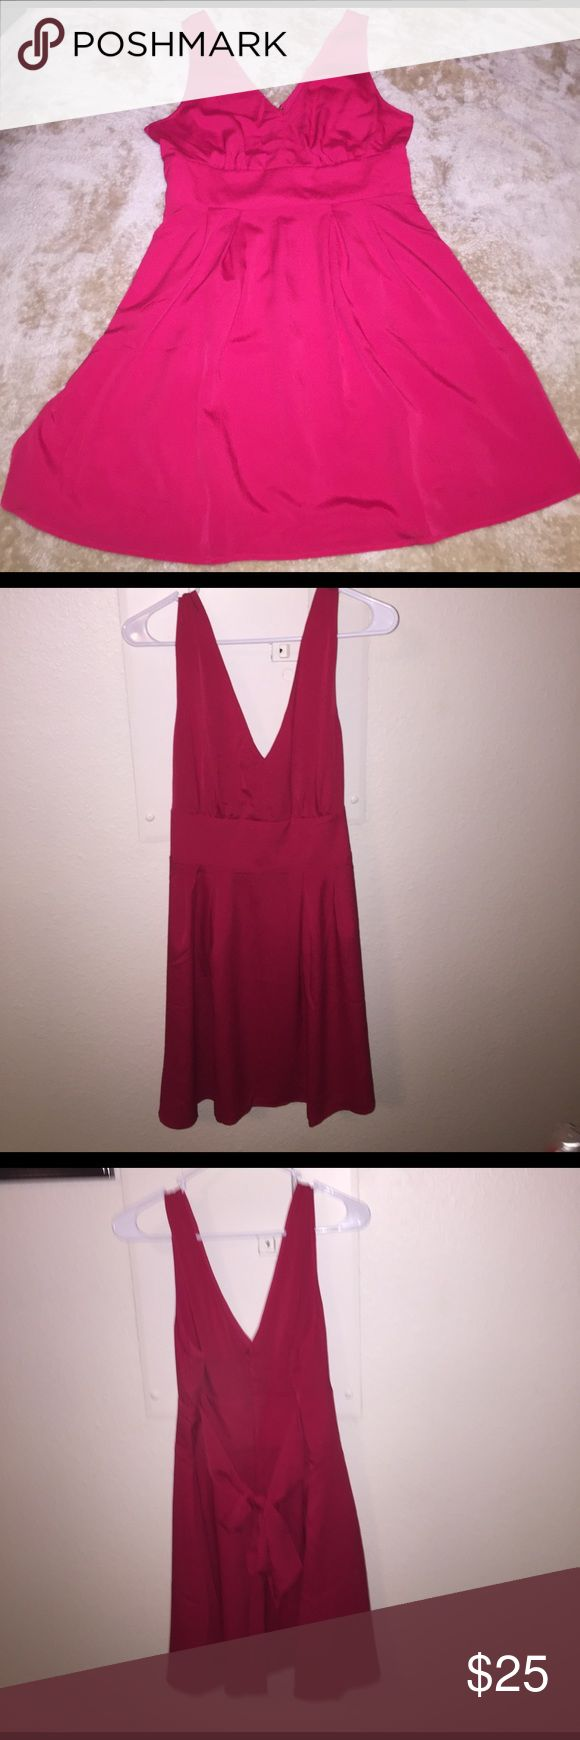 Victoria Secret Dress Like new Victoria Secret dress. Vibrant red, just above the knee in length and very figure flattering dress. 100% polyester. Victoria's Secret Dresses